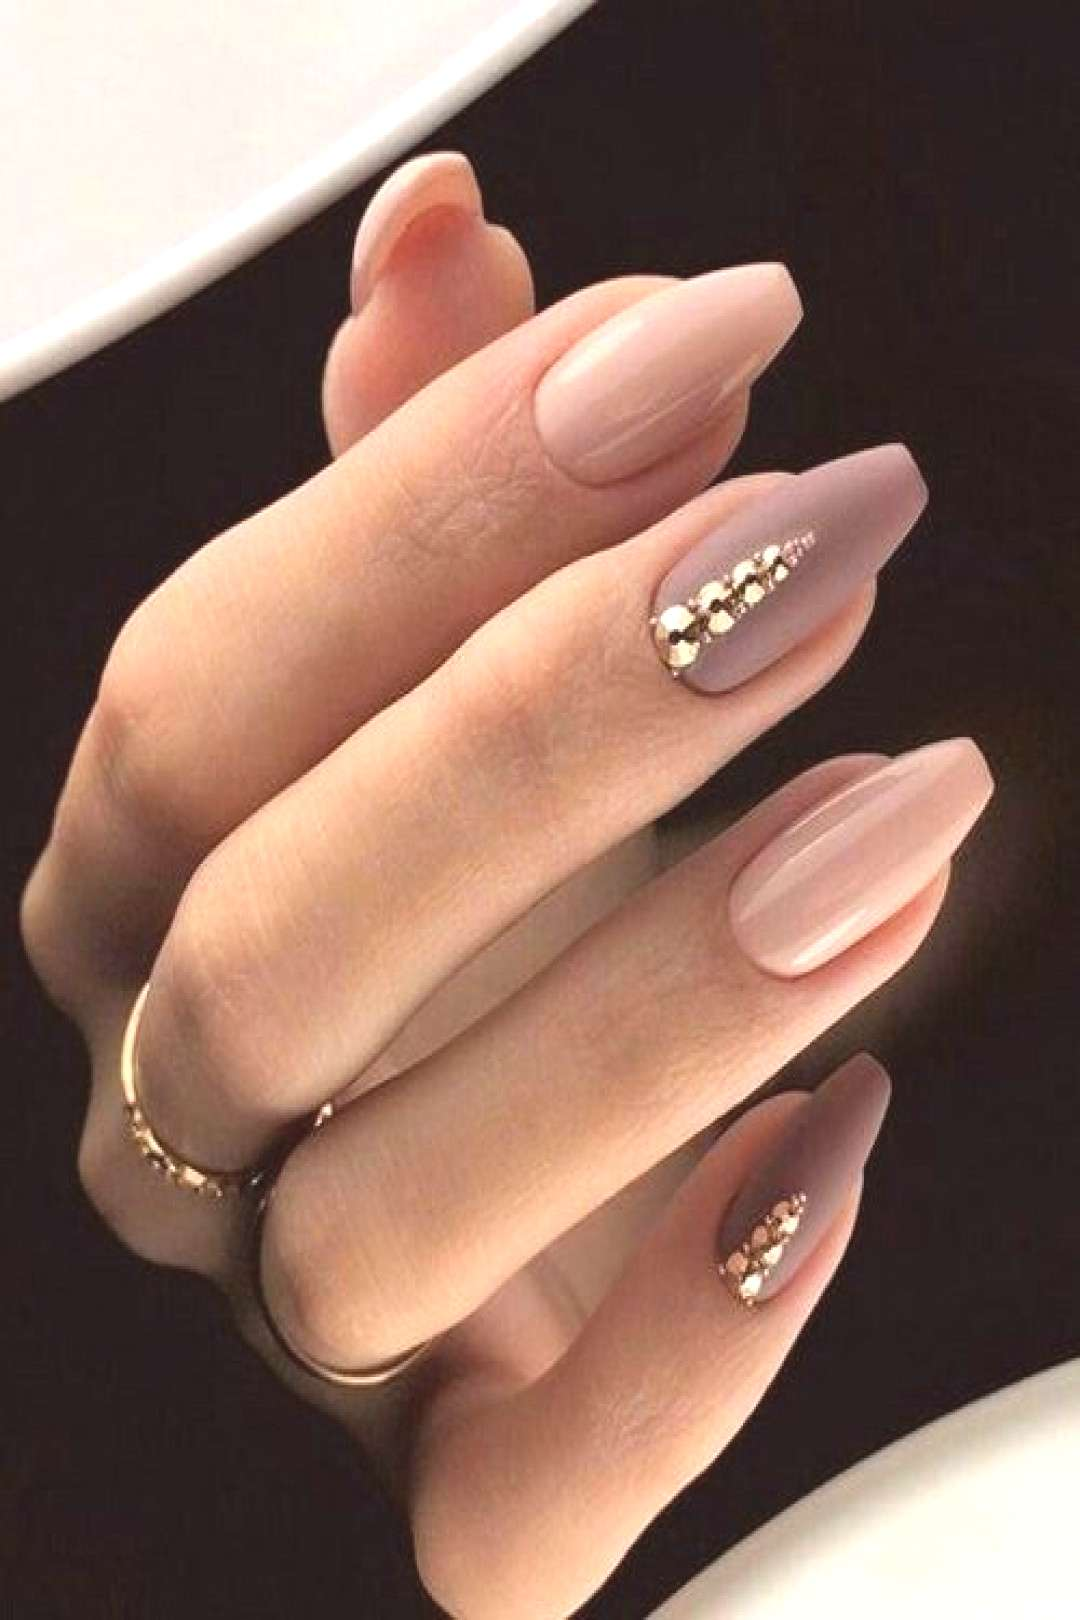 Génial  Photos ongles tendance Astuces,Nail spa designs provide much needed services to br... G